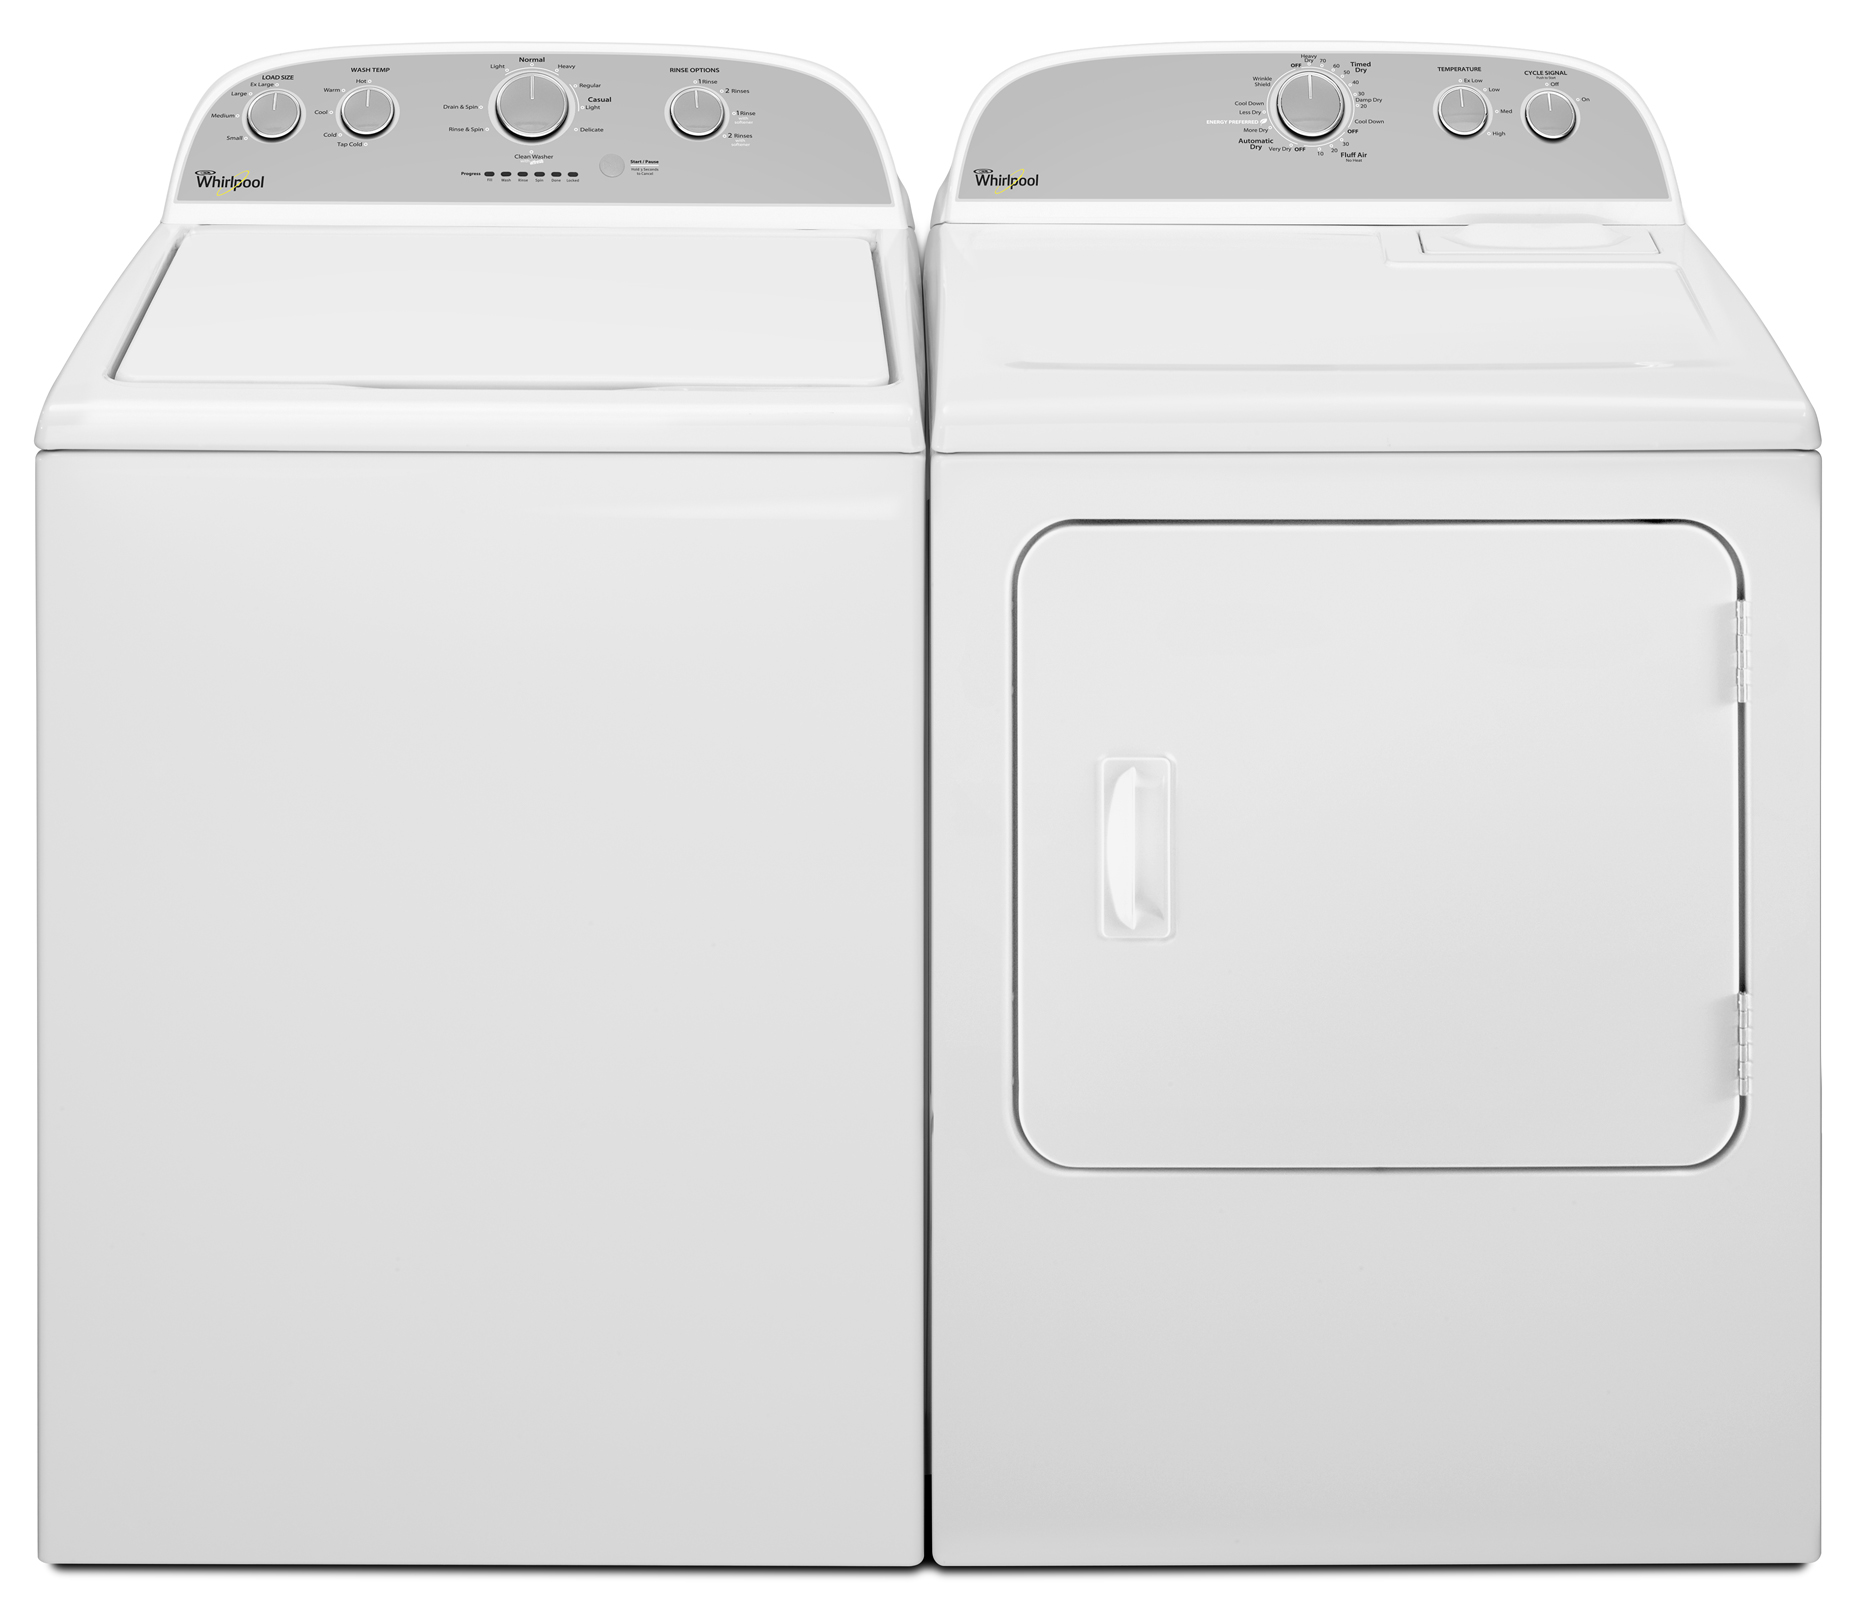 Whirlpool WGD4800BQ 7.0 cu. ft. Gas Dryer w/ Energy Preferred Setting - White